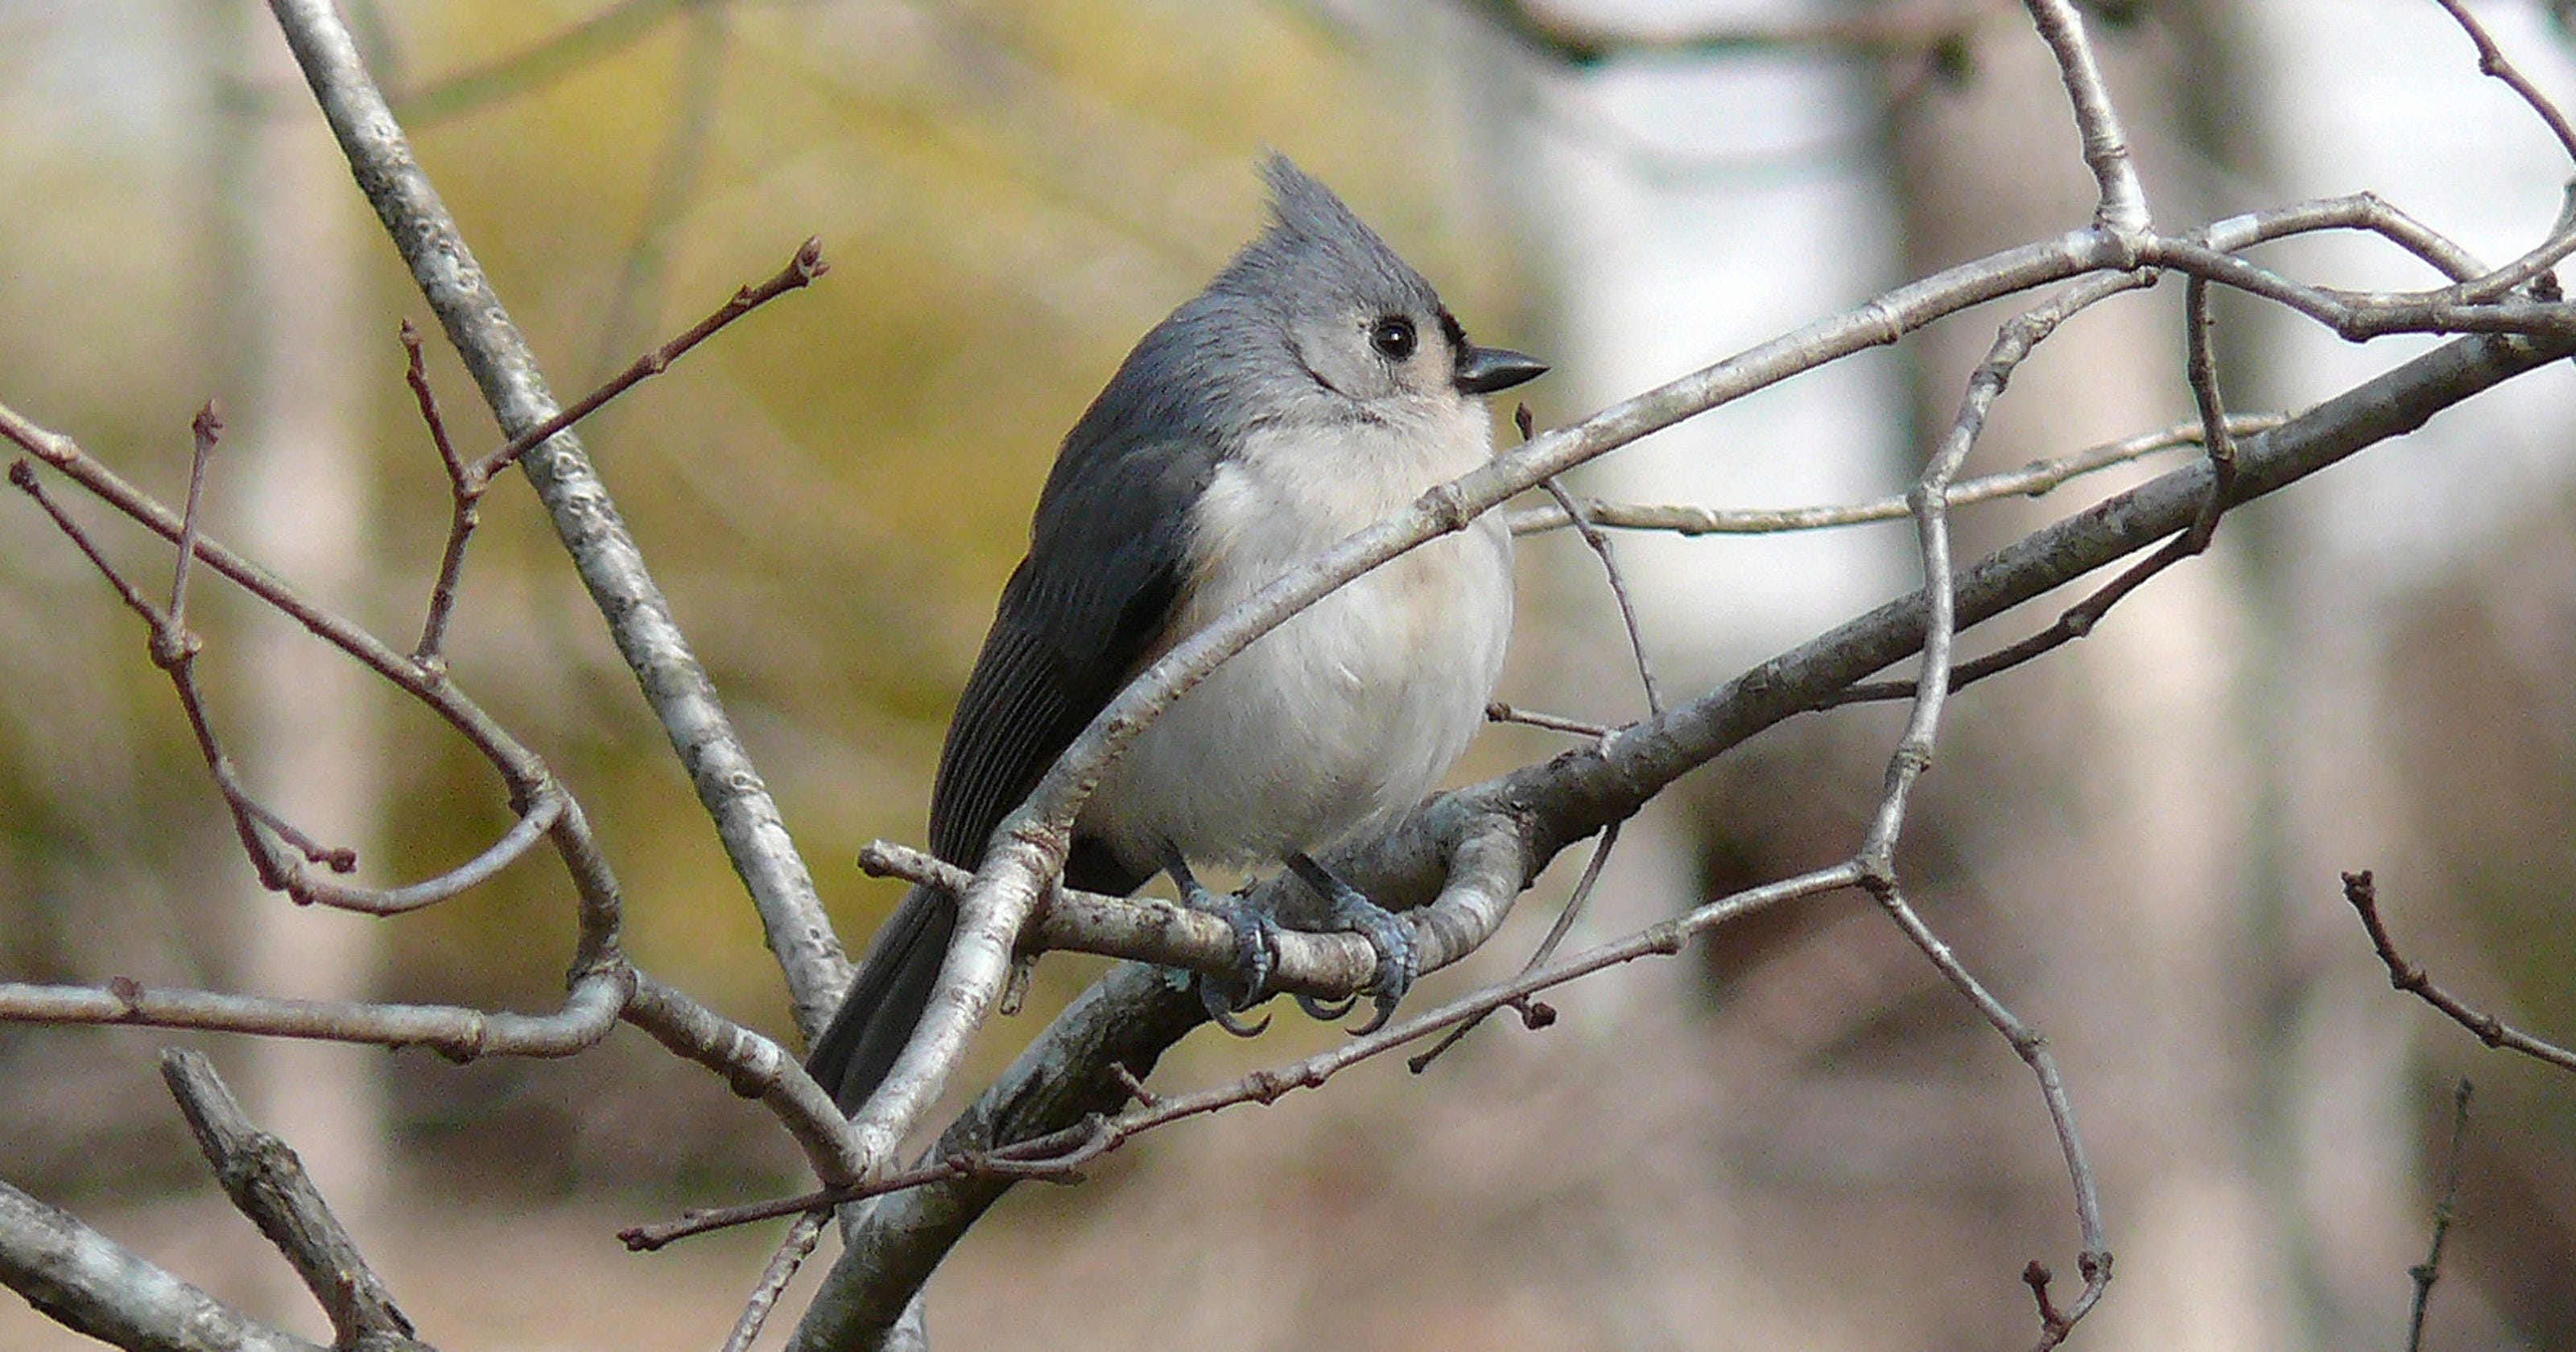 Birdlife: Learn 10 bird songs while sitting on the porch